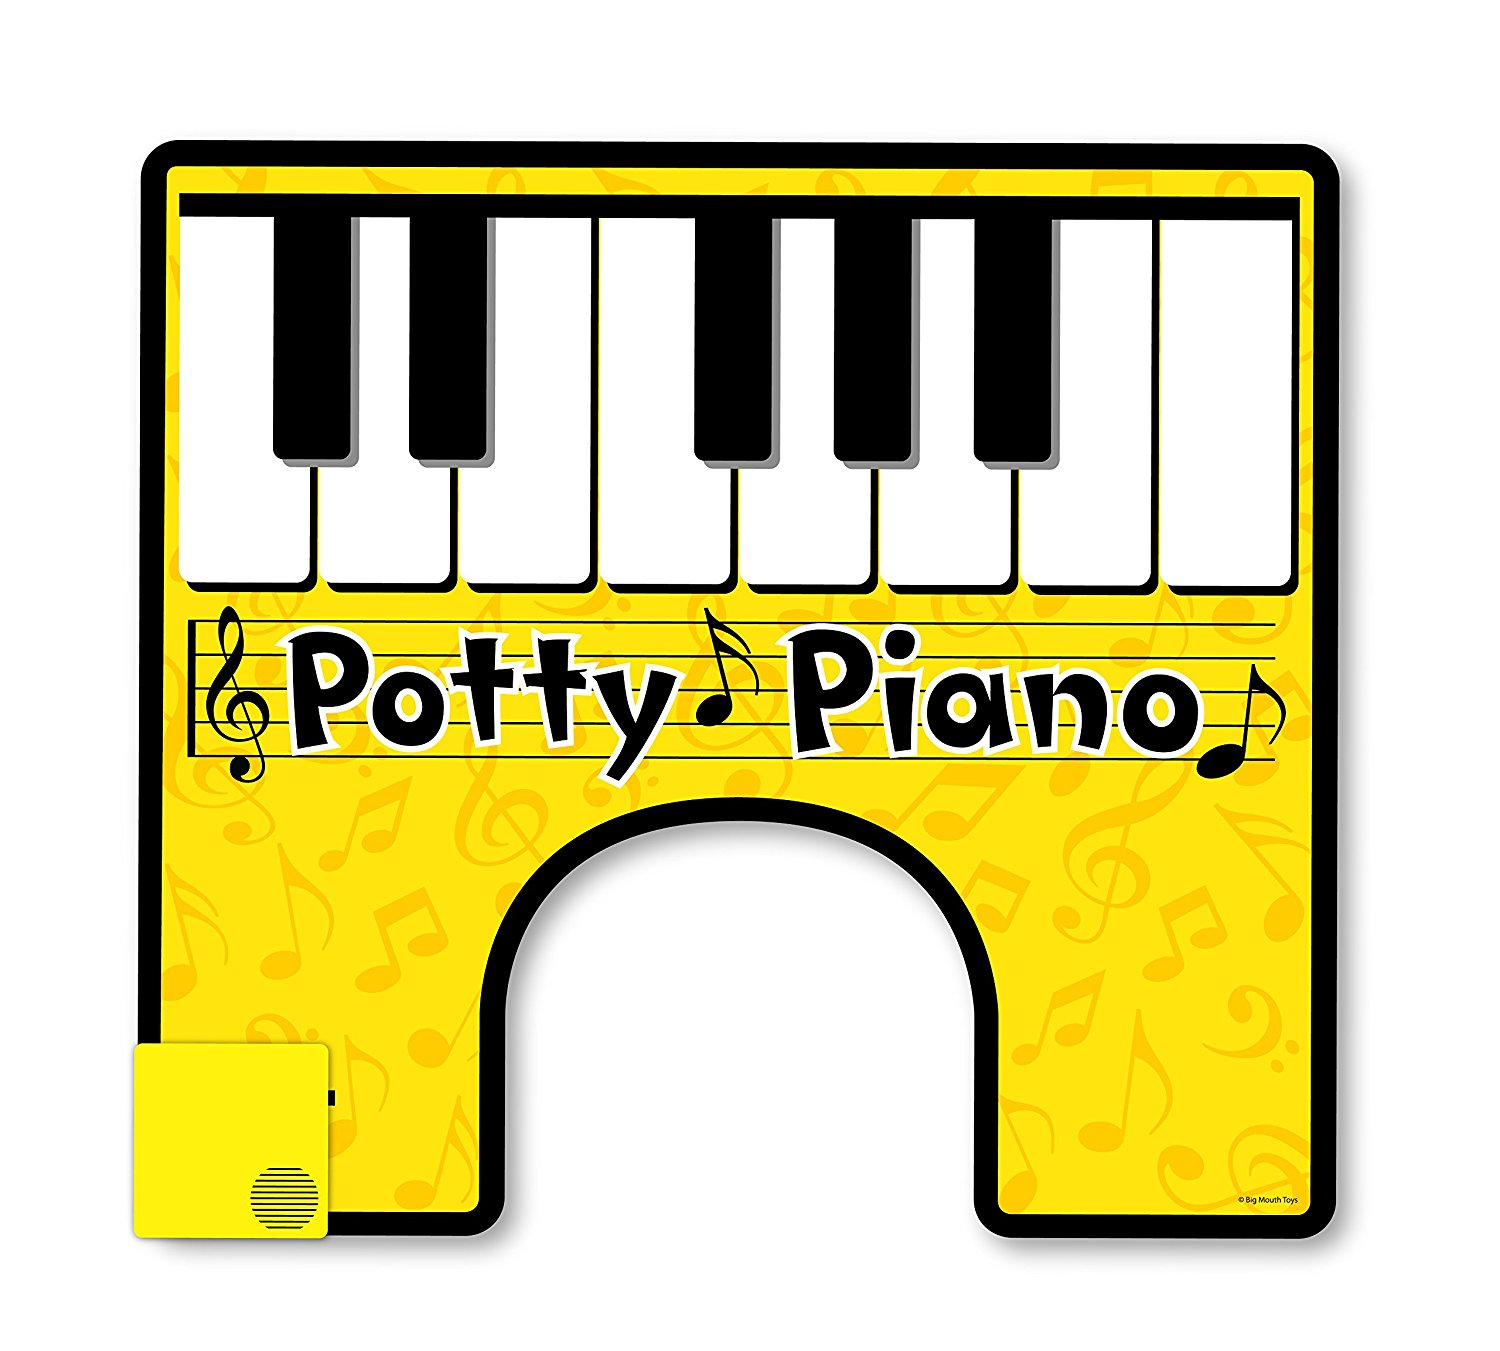 piano-toilettes-potty-wc-1